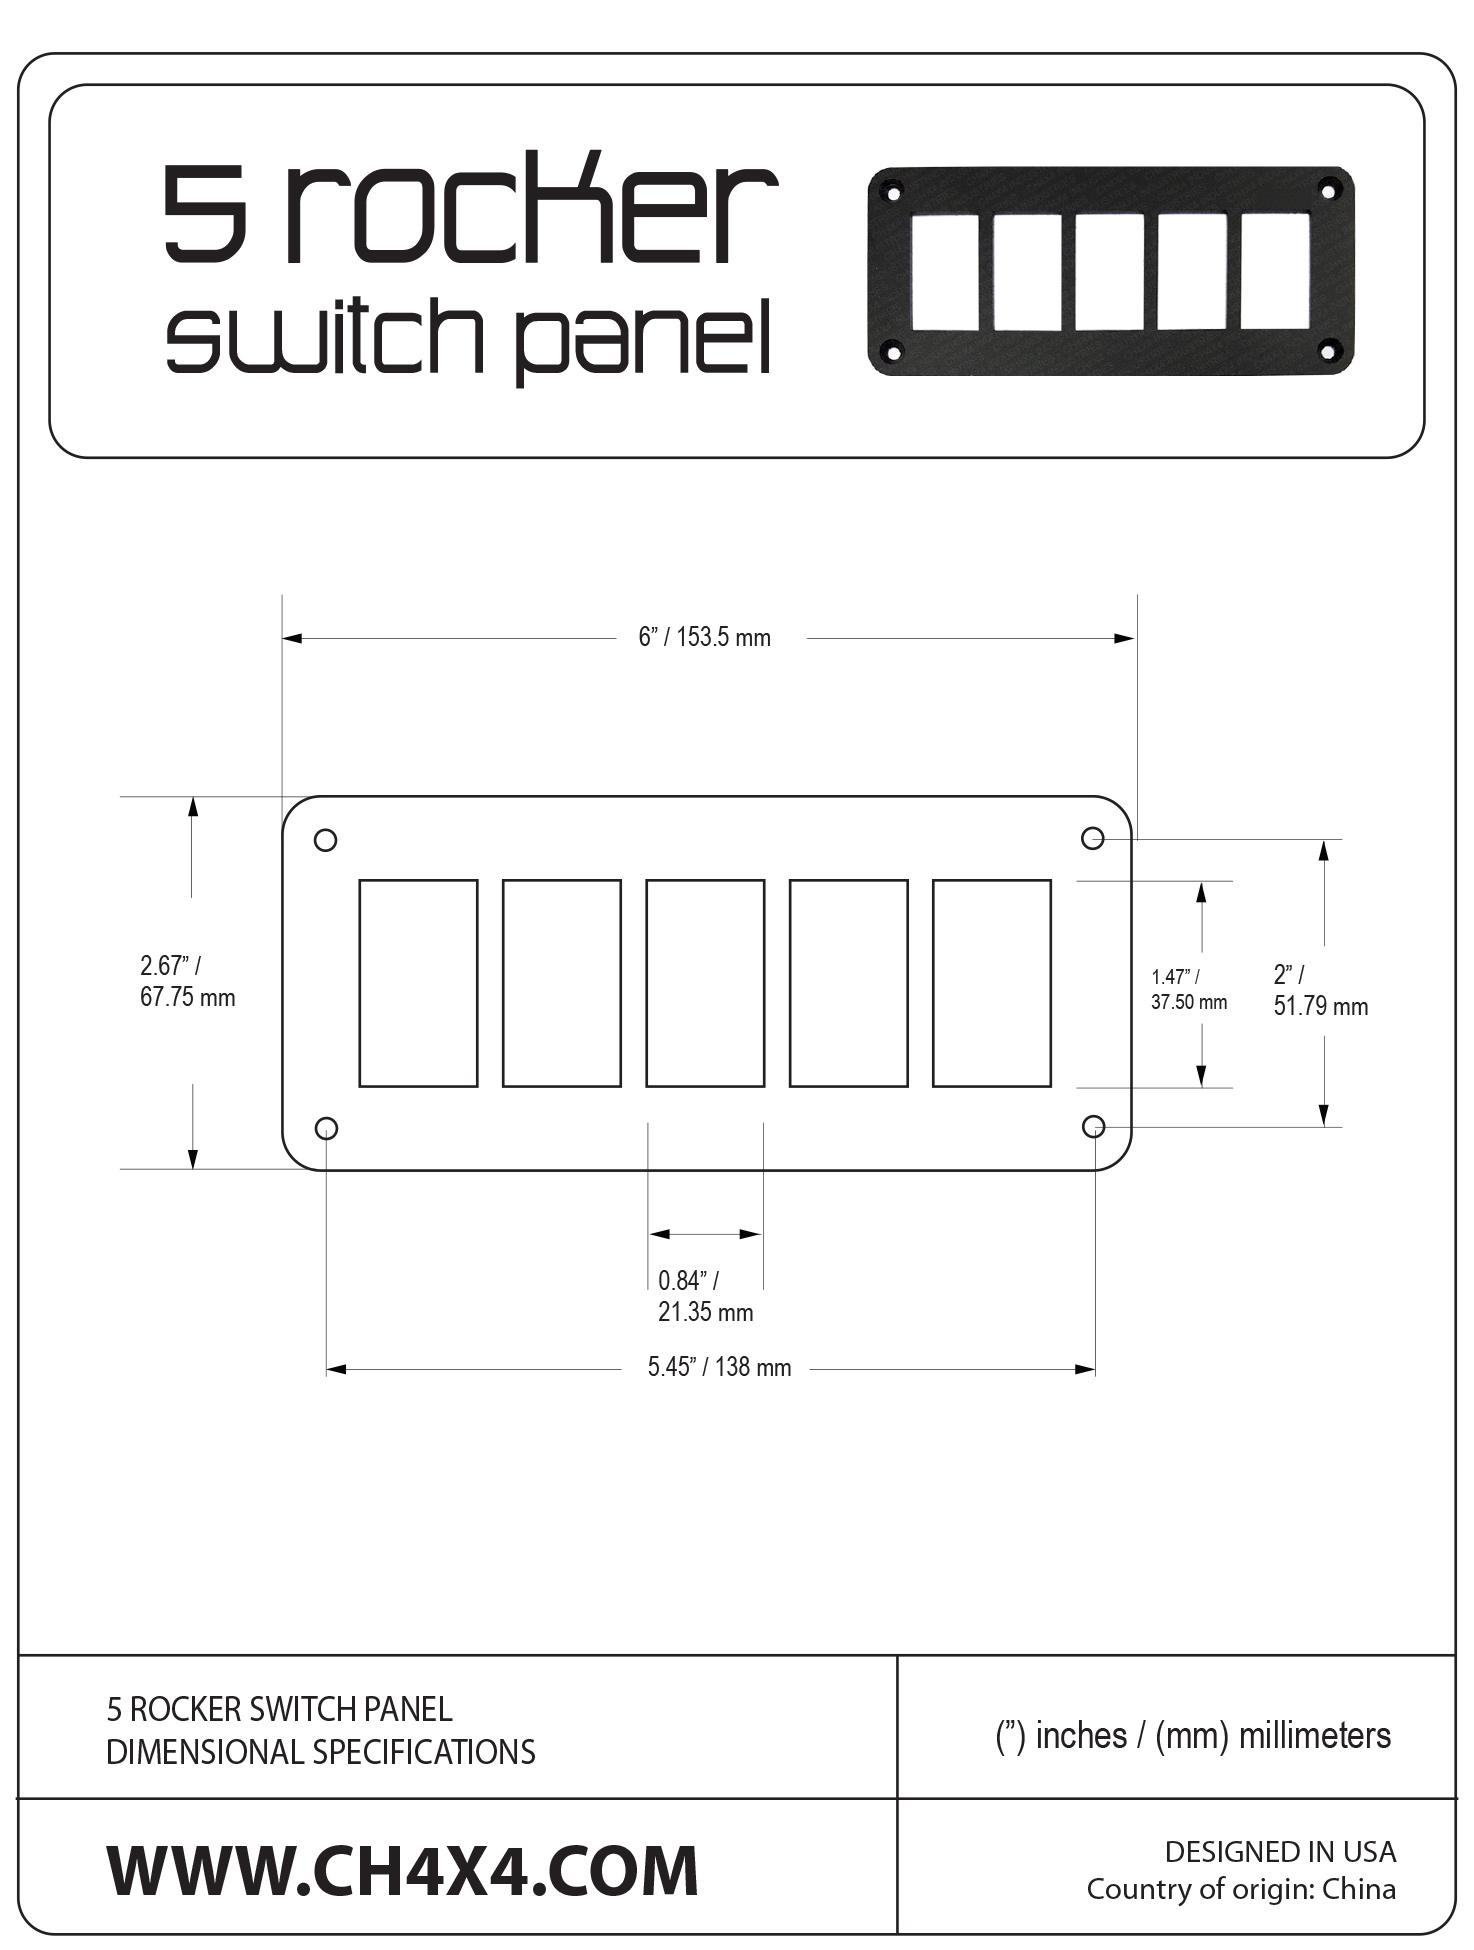 5-Rocket-Switch-Panel-Dimensional-Specifications